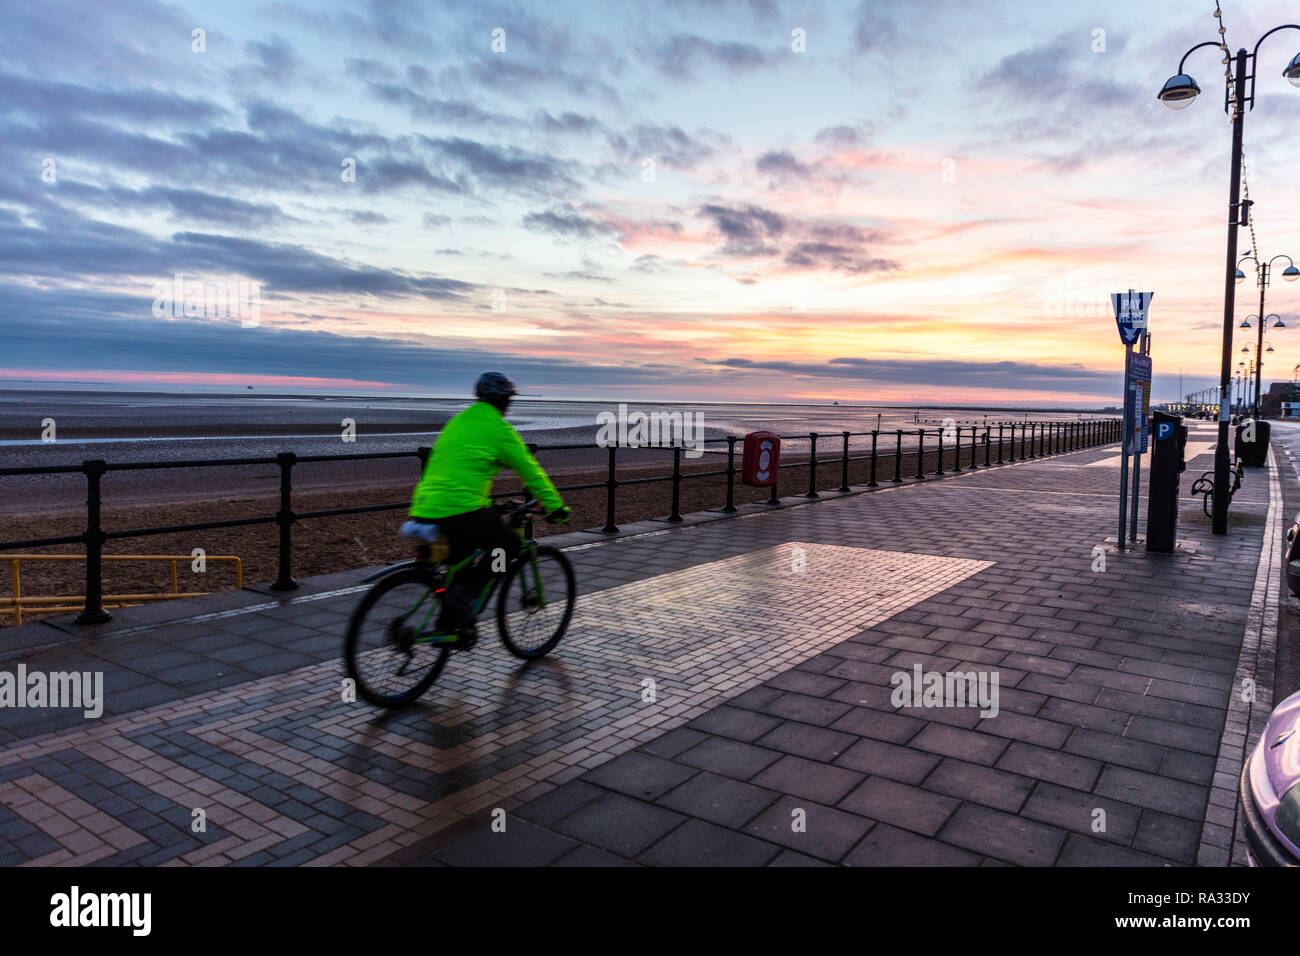 Cleethorpes, Lincolnshire, UK. 31st Dec, 2018. UK Weather: Red sunrise skies in Cleethorpes, Lincolnshire, East Coast, UK. 31st Dec, 2018. Red sky making the perfect backdrop to Cleethorpes Promenade with cyclist starting his new years resolutions early, with partial cloud. Credit: Tommy (Louth)/Alamy Live News - Stock Image